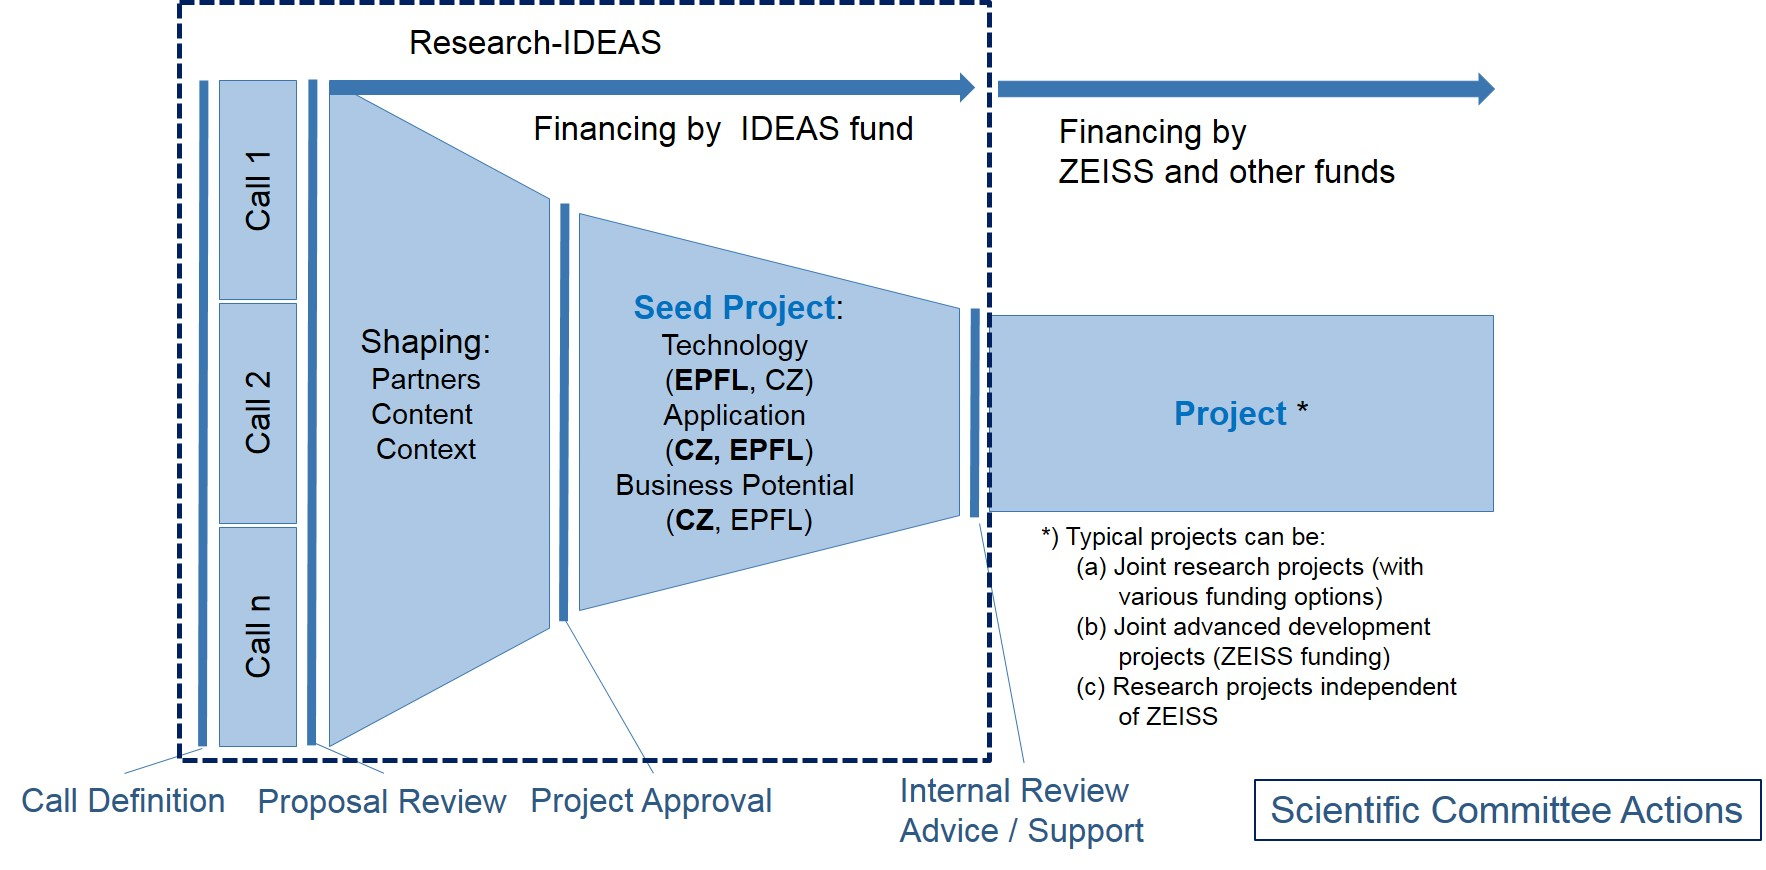 Description of IDEAS Project Pipeline